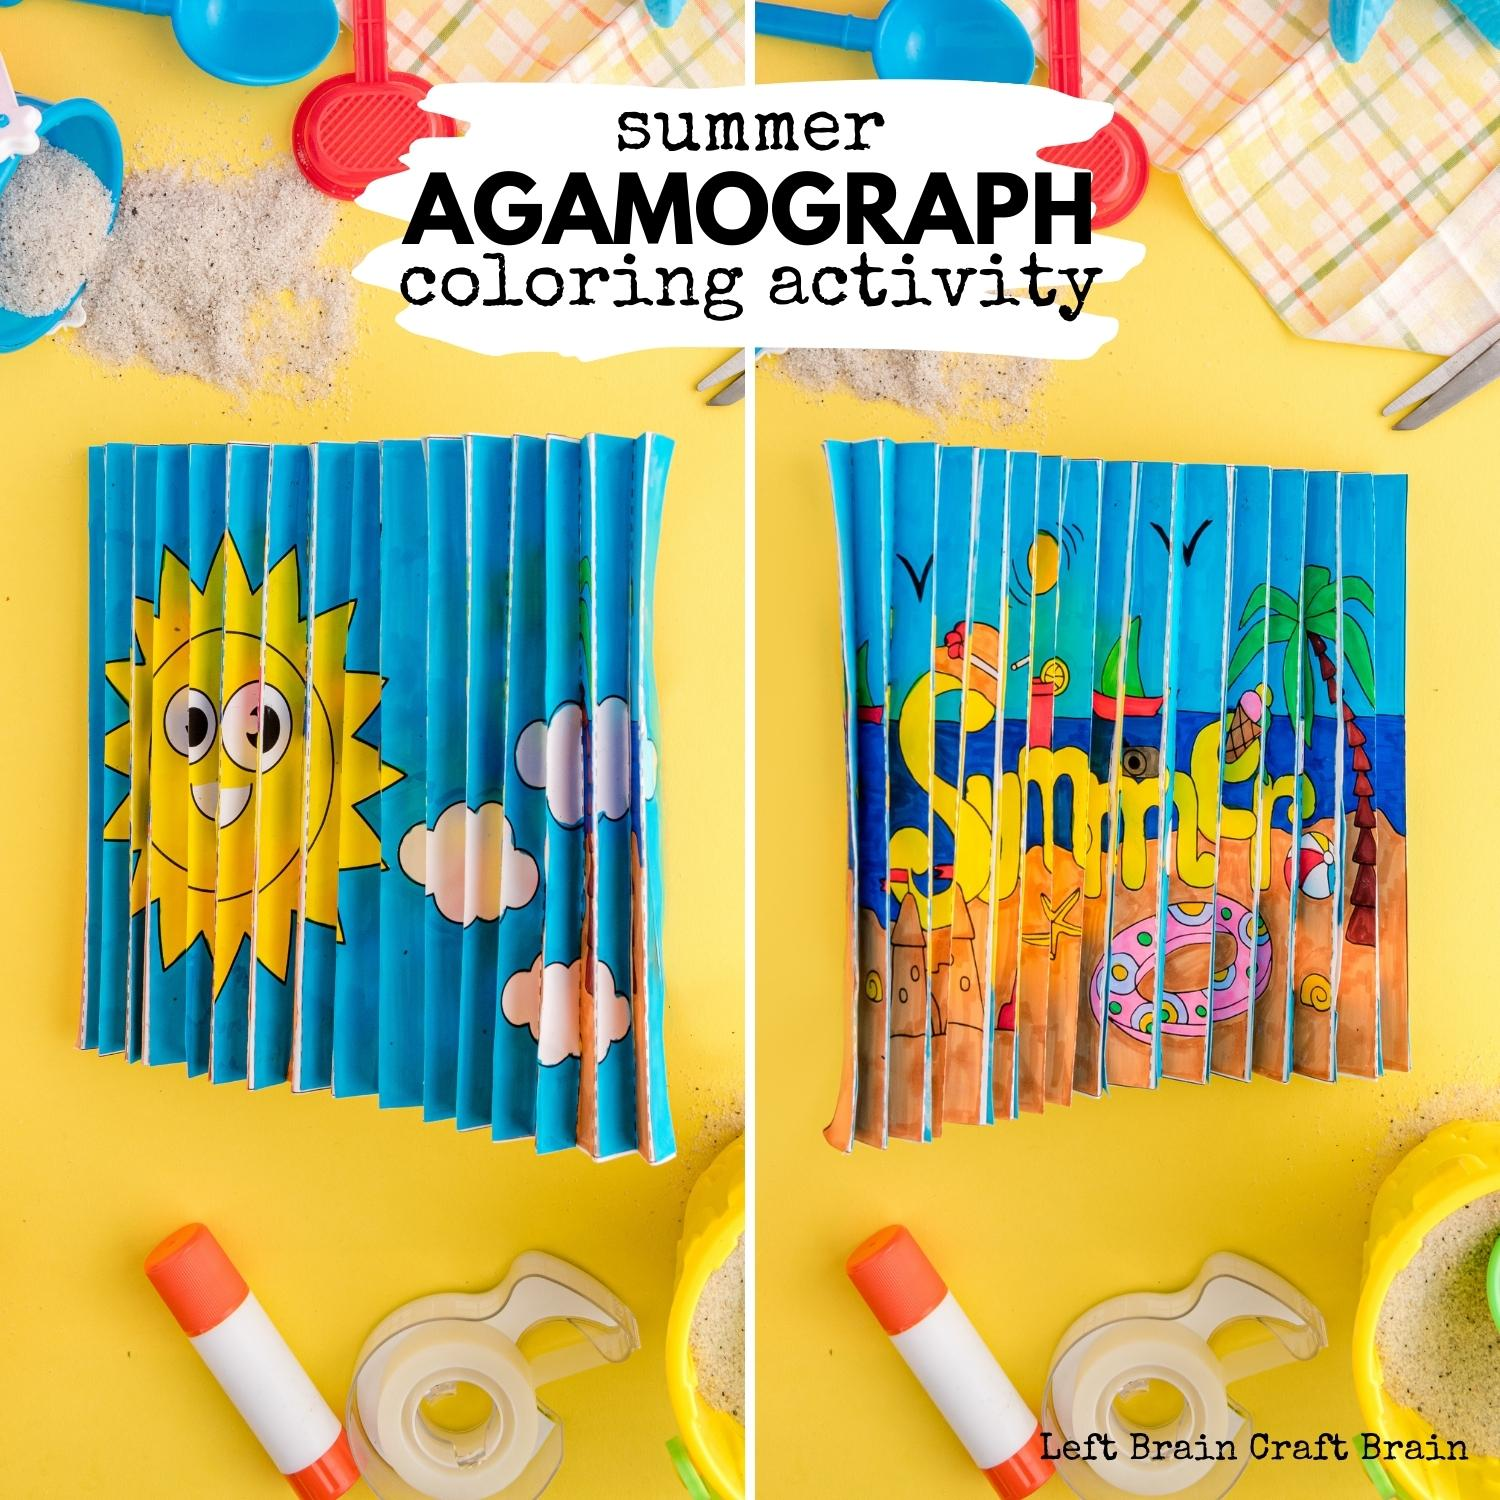 Summer Agamograph Coloring With Template Left Brain Craft Brain